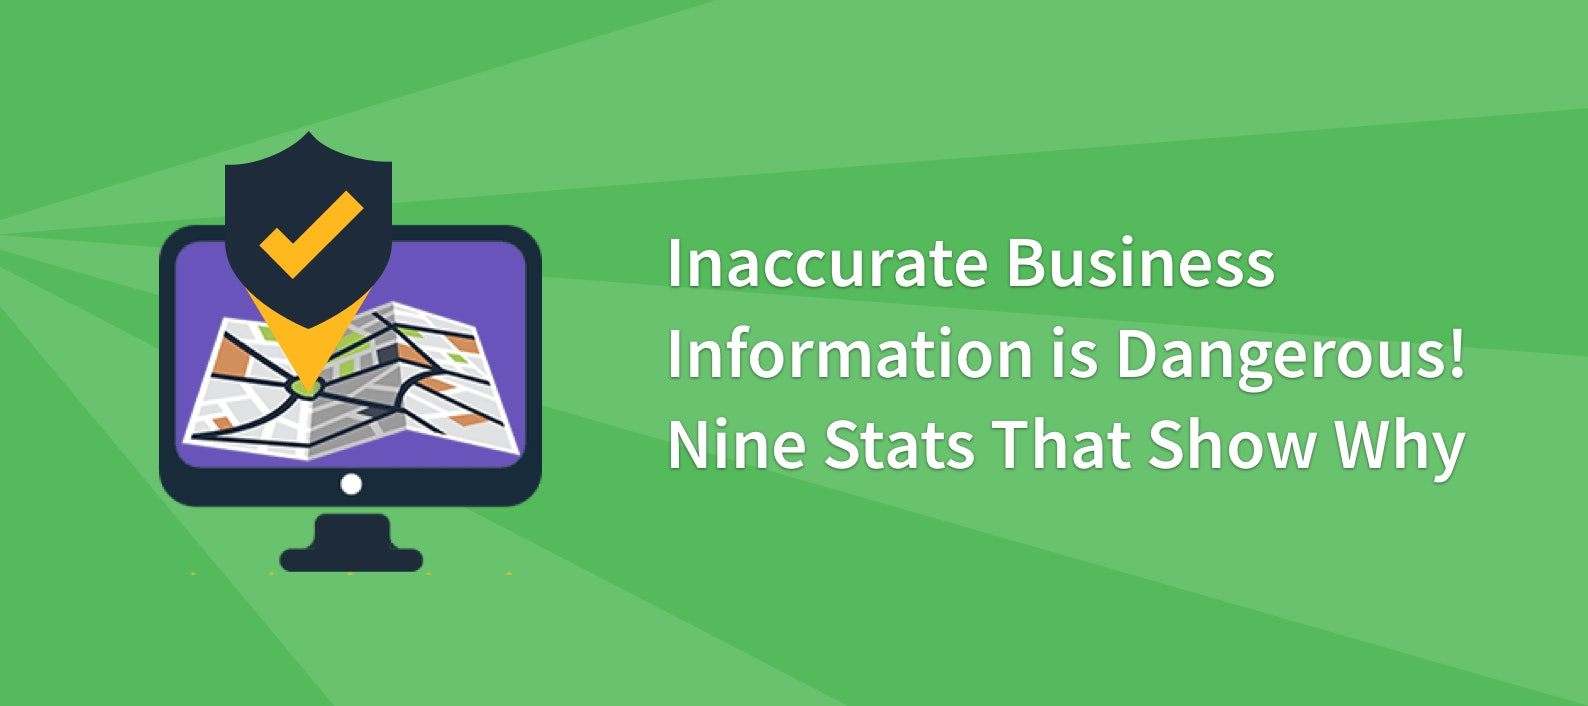 Inaccurate Business Information is Dangerous! Nine Stats That Show Why